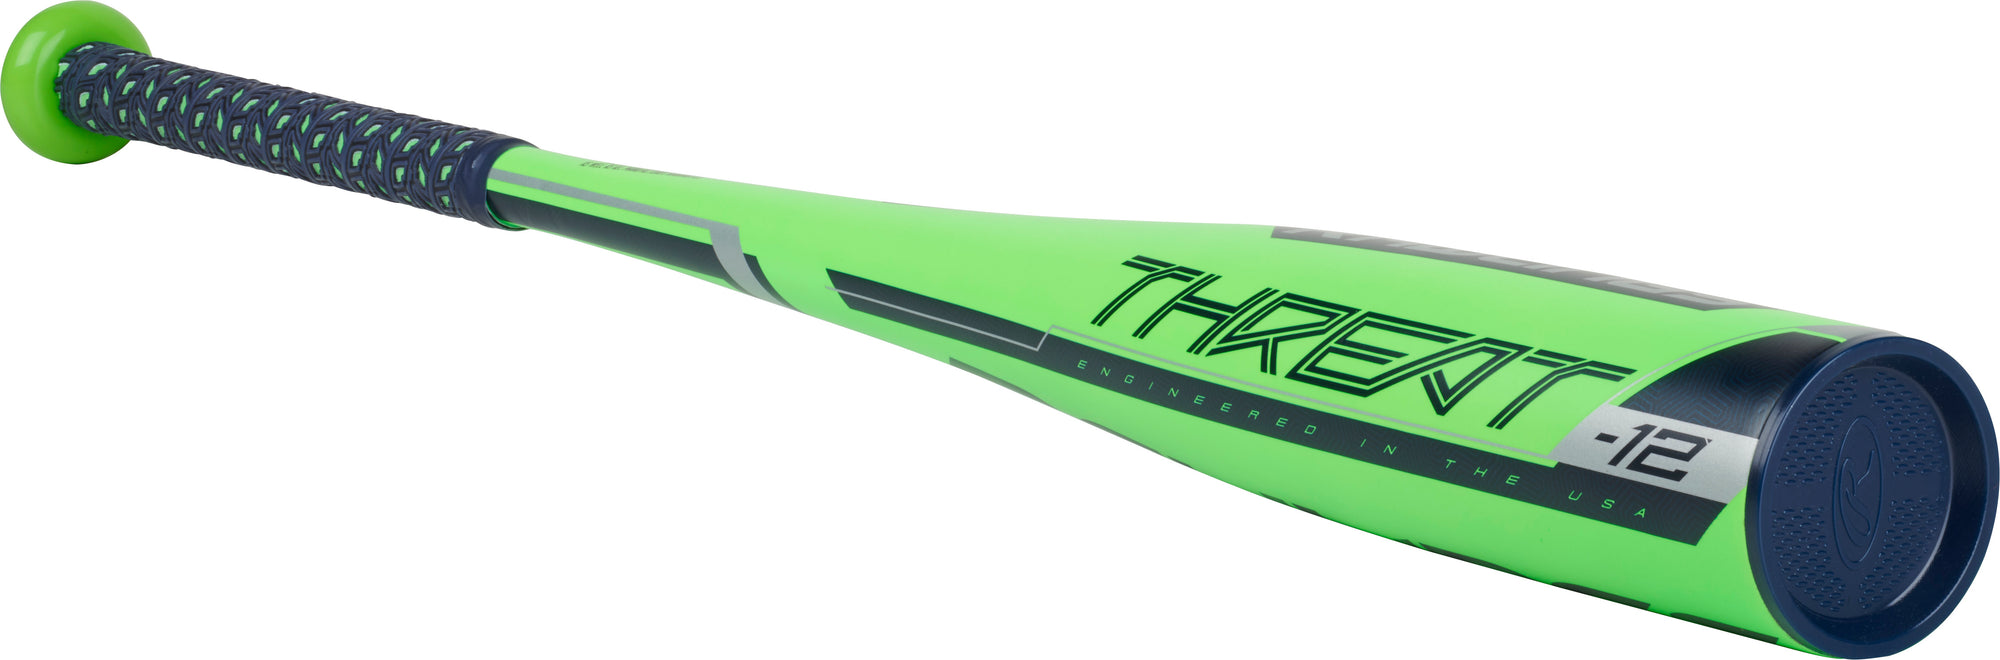 2019 RAWLINGS THREAT USA BASEBALL® BAT (-12)